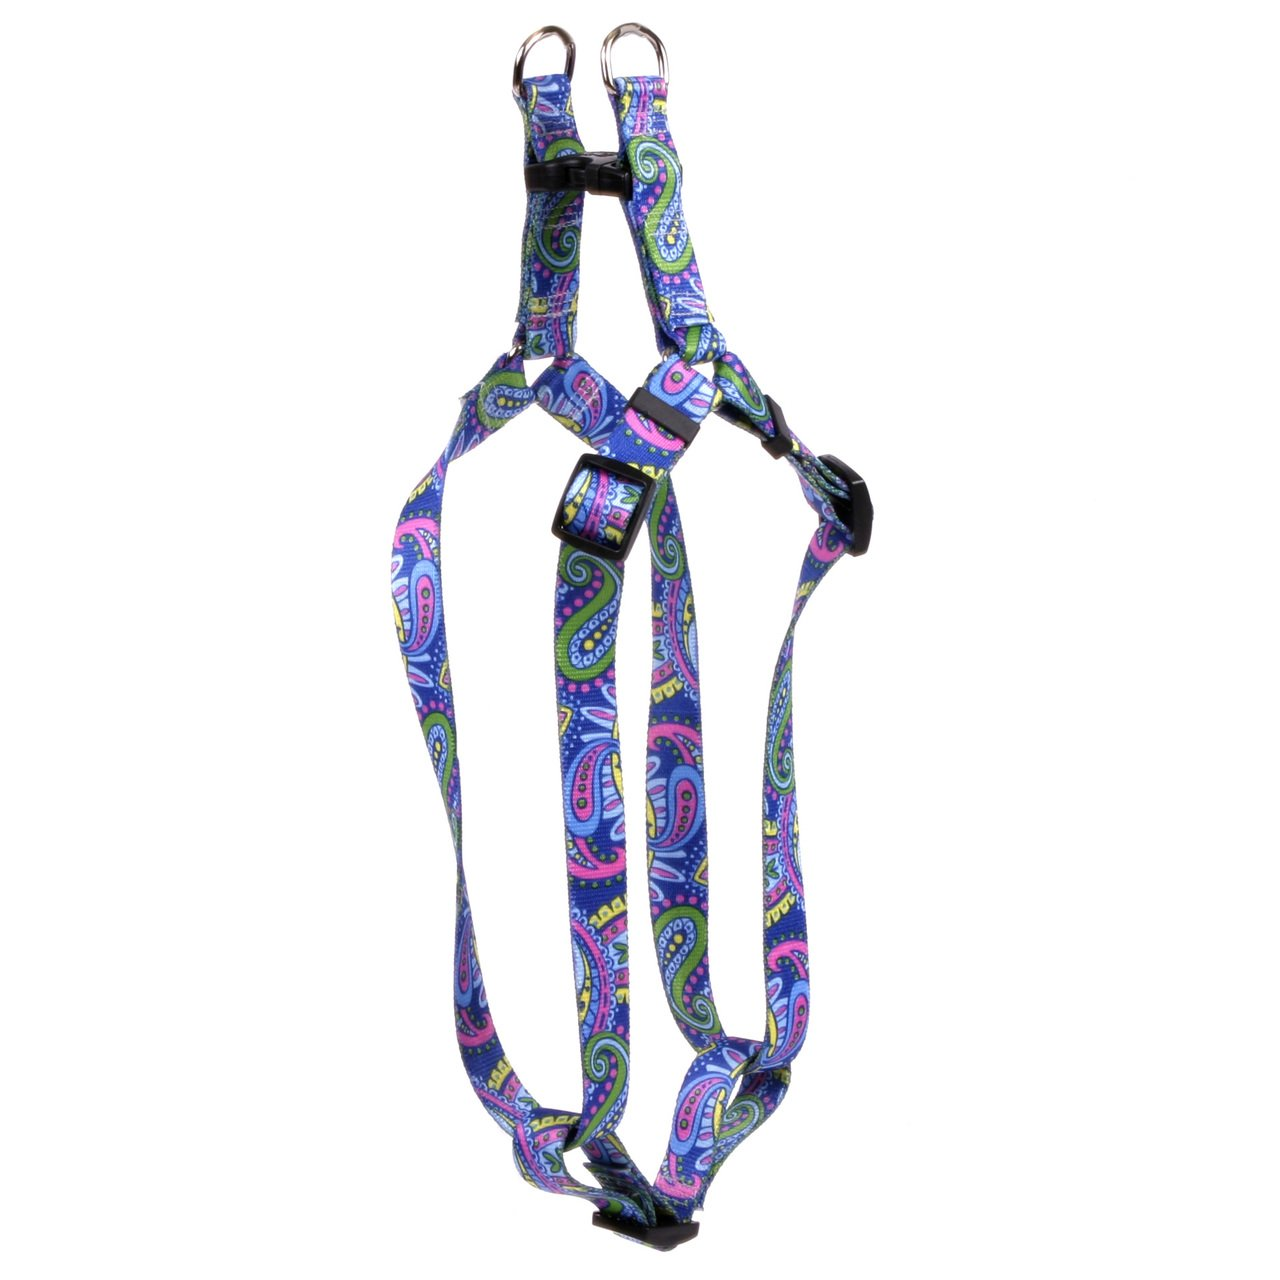 Yellow Dog Design Standard Step-in Harness, Paisley Power, Extra Small 4.5'' - 9''